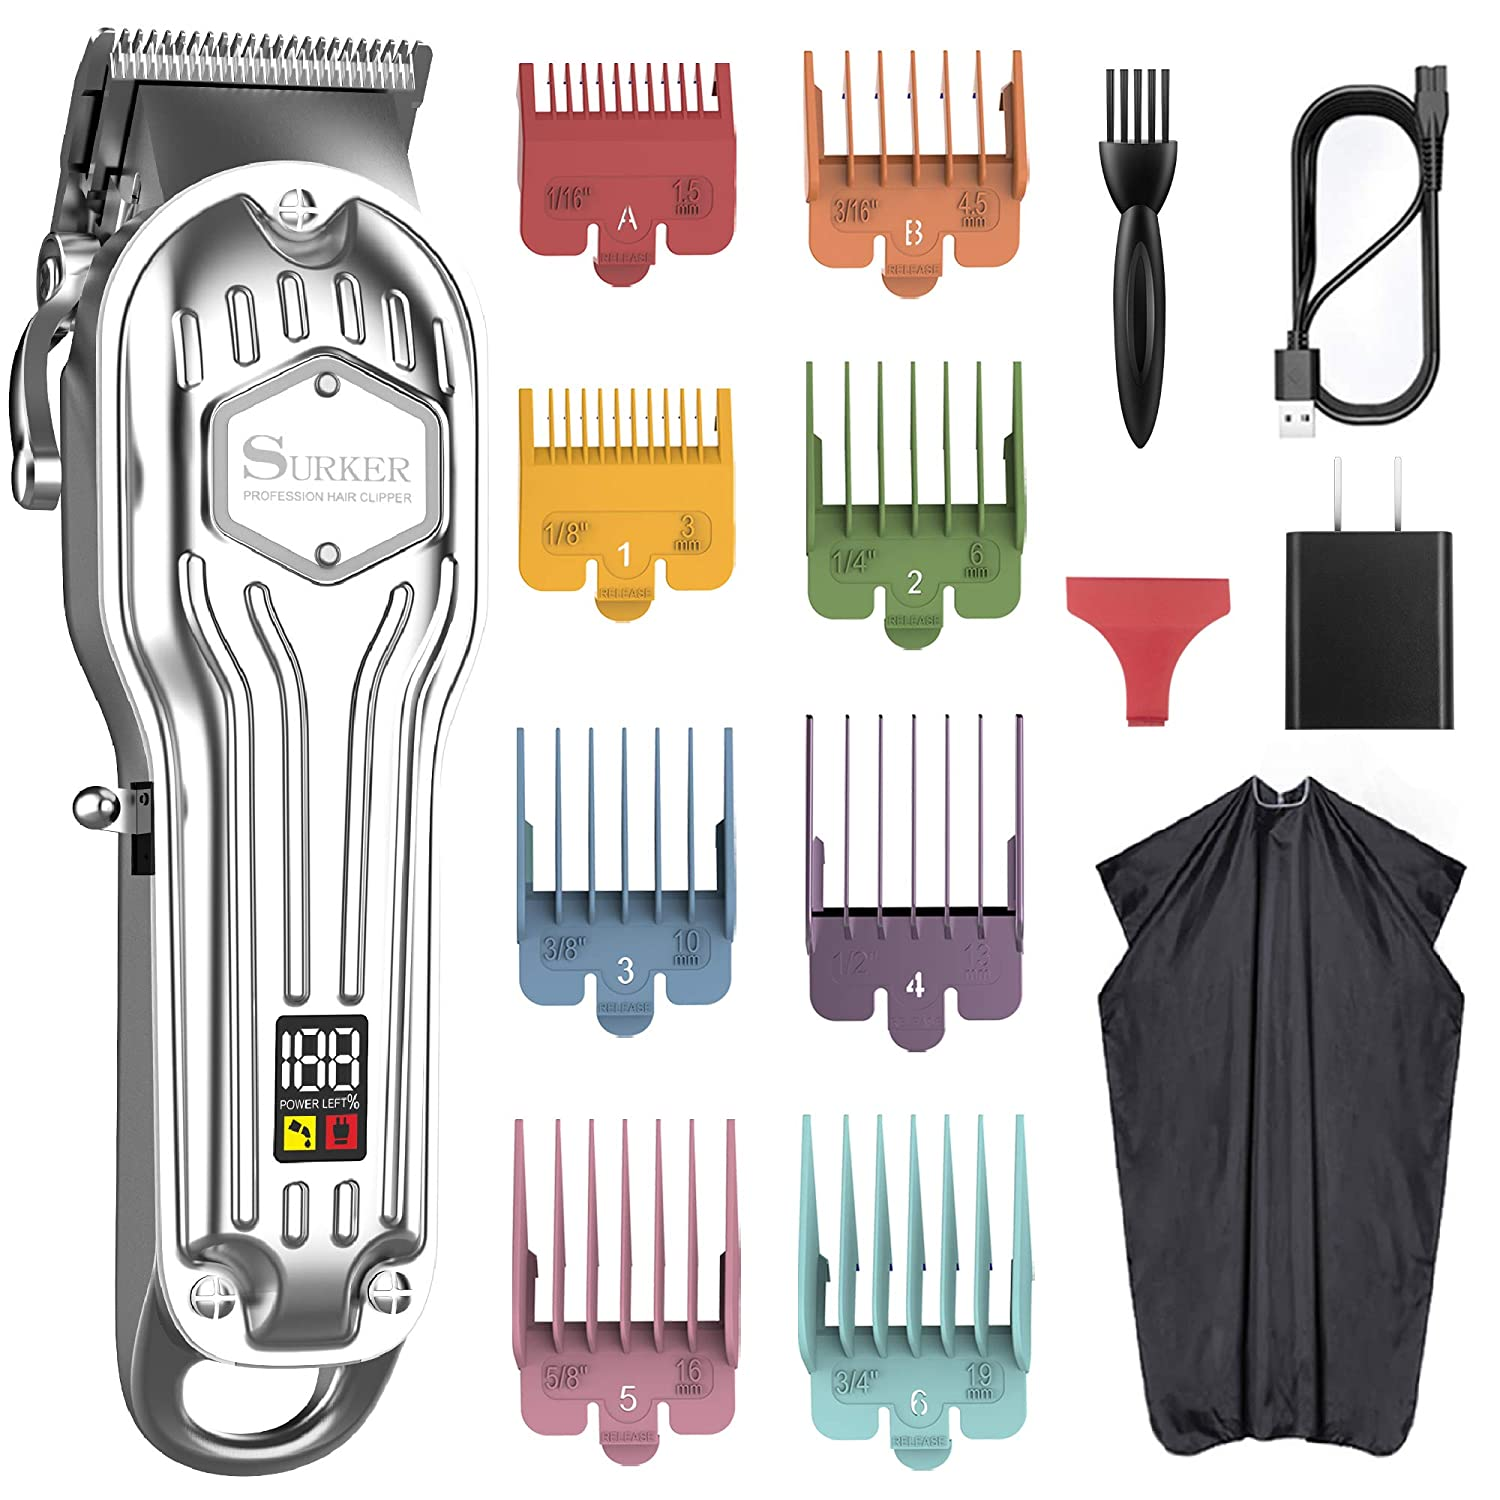 SURKER Mens 70% OFF Outlet Hair Clippers Cordless Professiona Fort Worth Mall Cord Trimmer